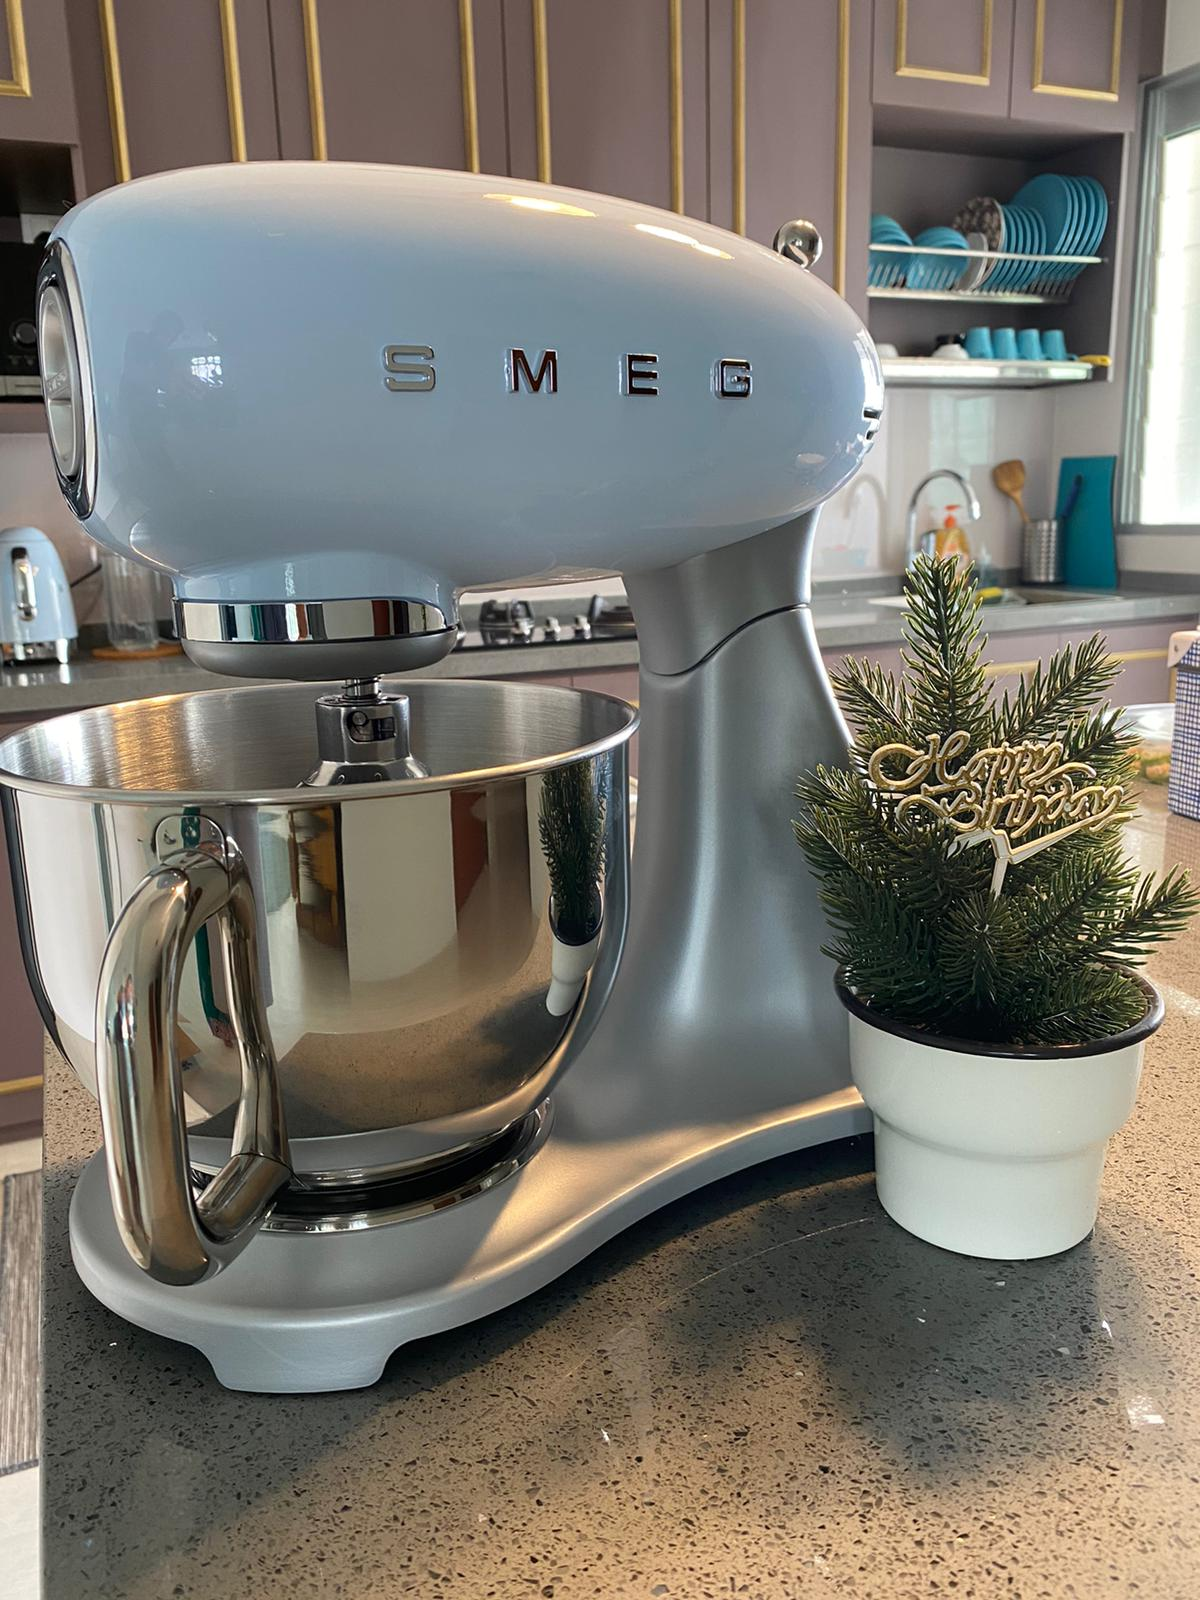 smeg_stand_mixer_small_kitchen_appliance_by_born_in_colour_singapore_furniture_online